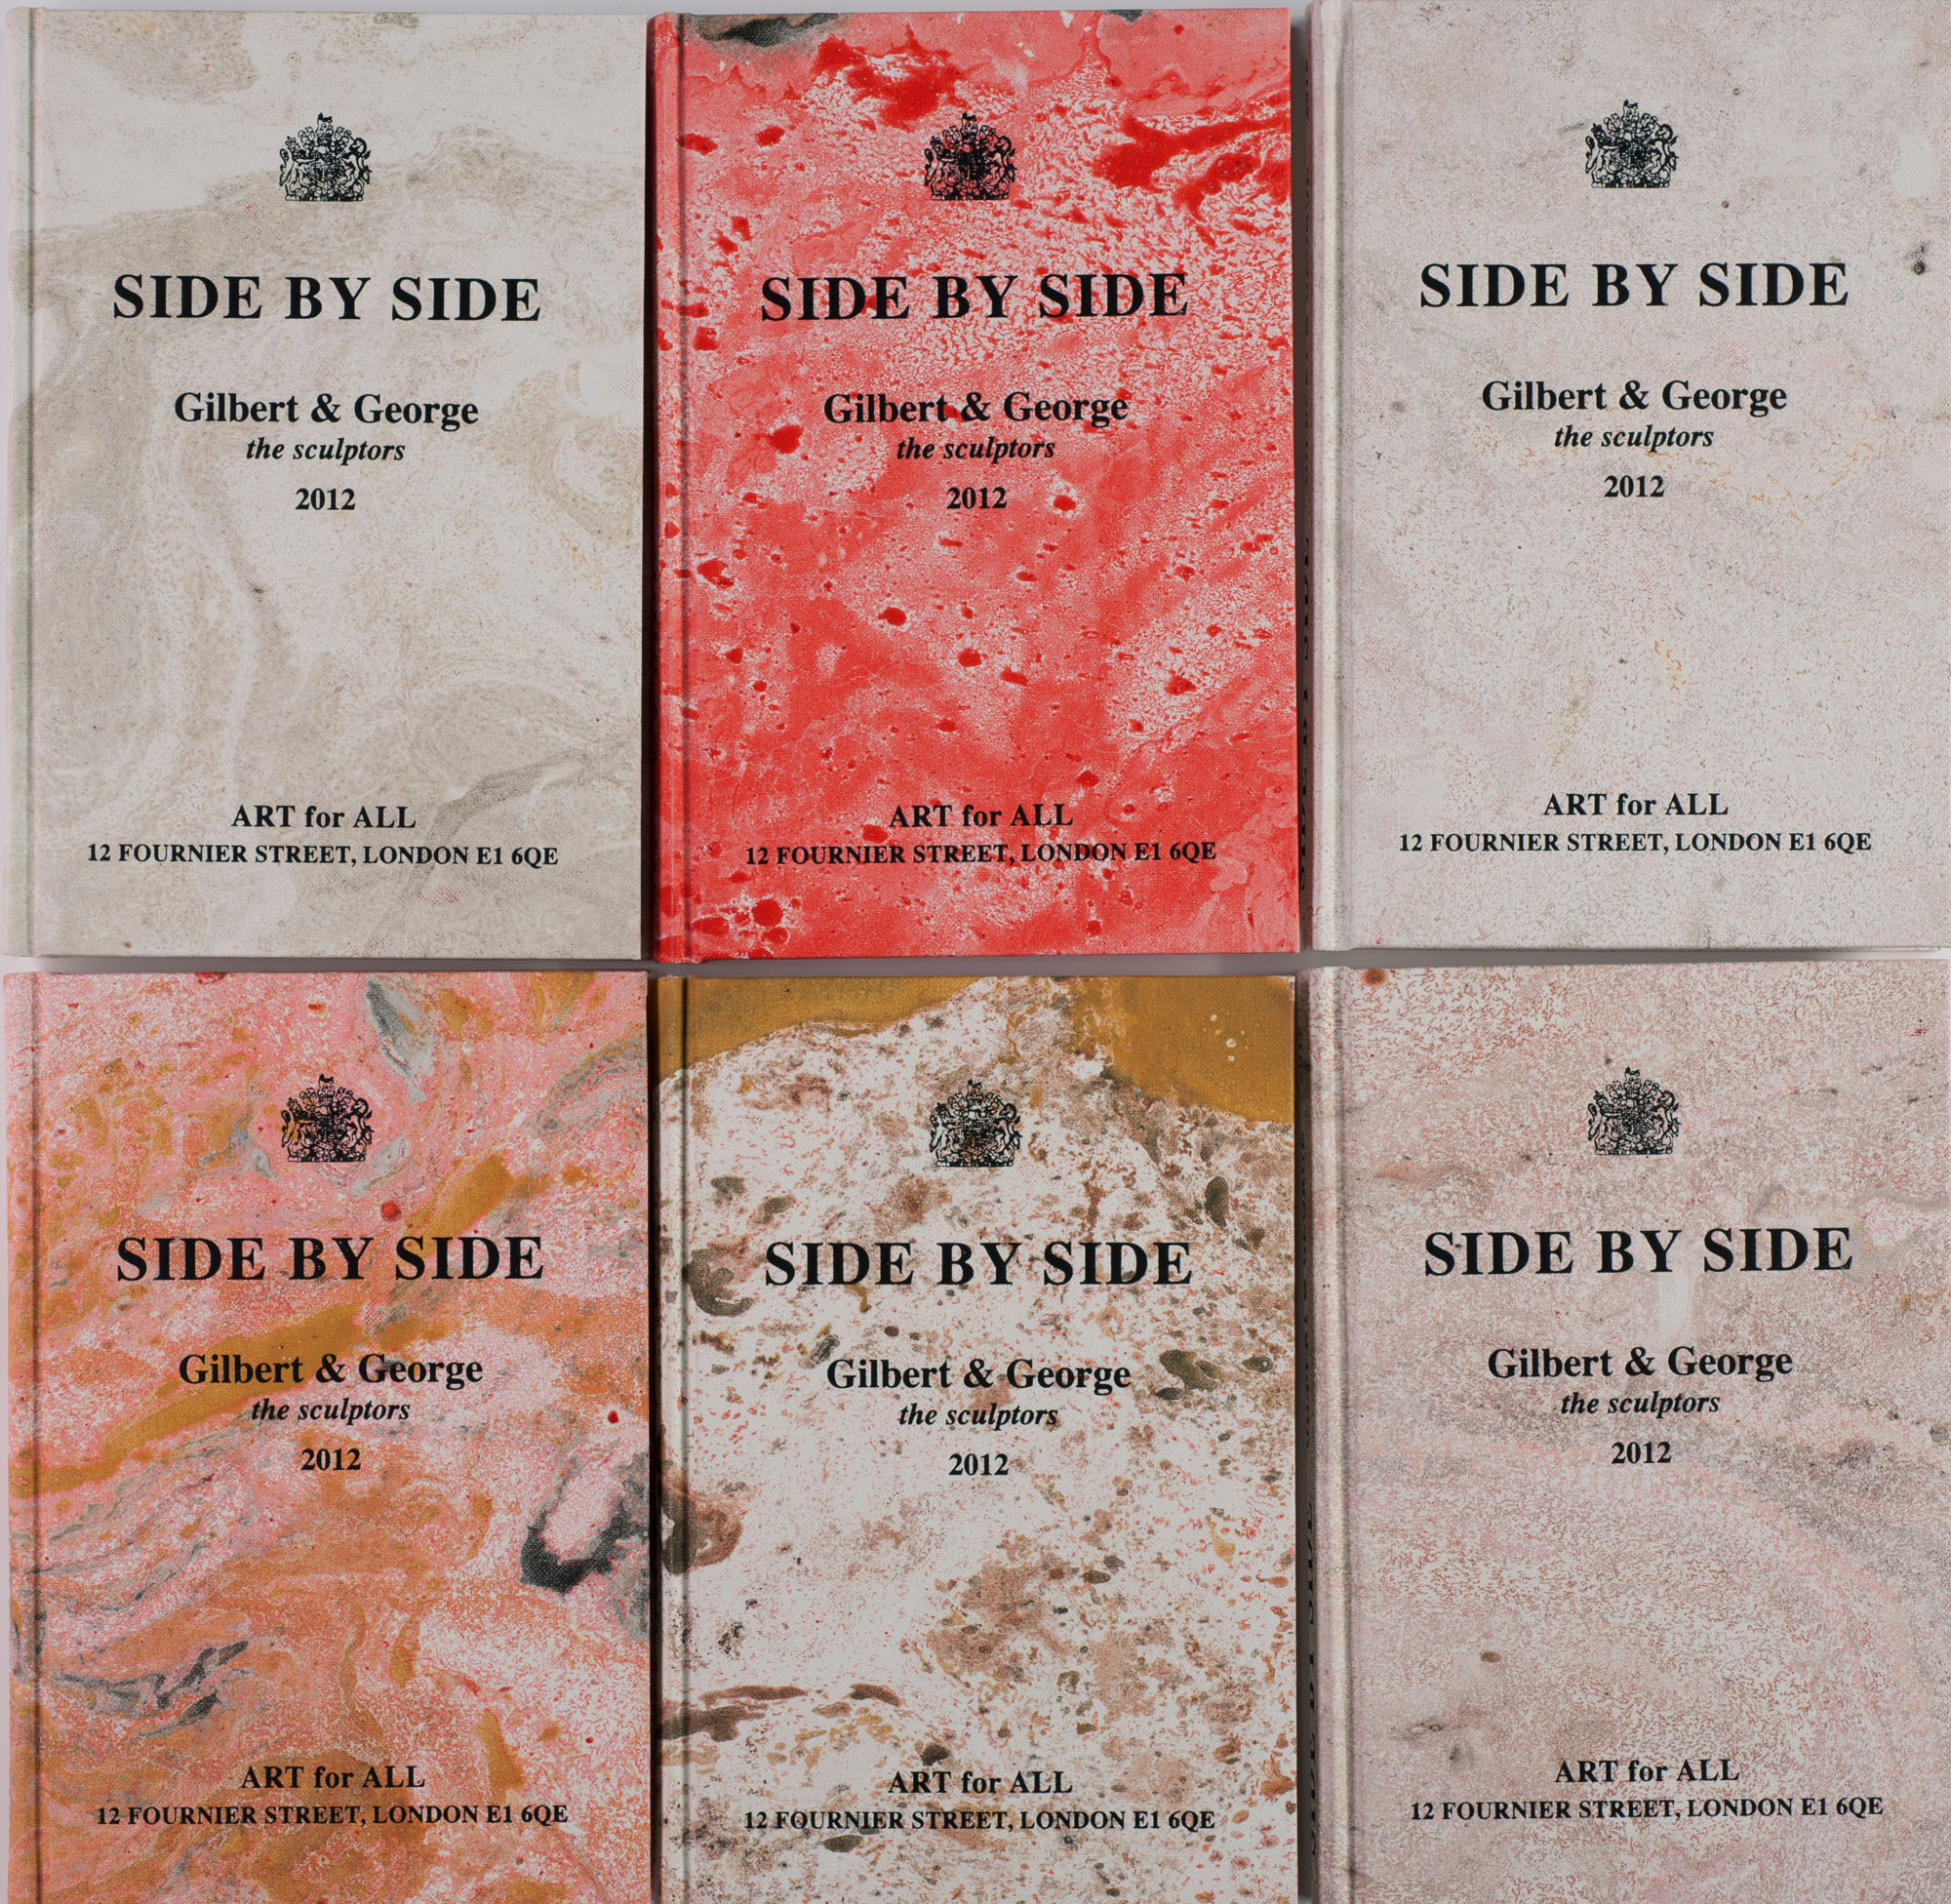 Cover images of Side by Side